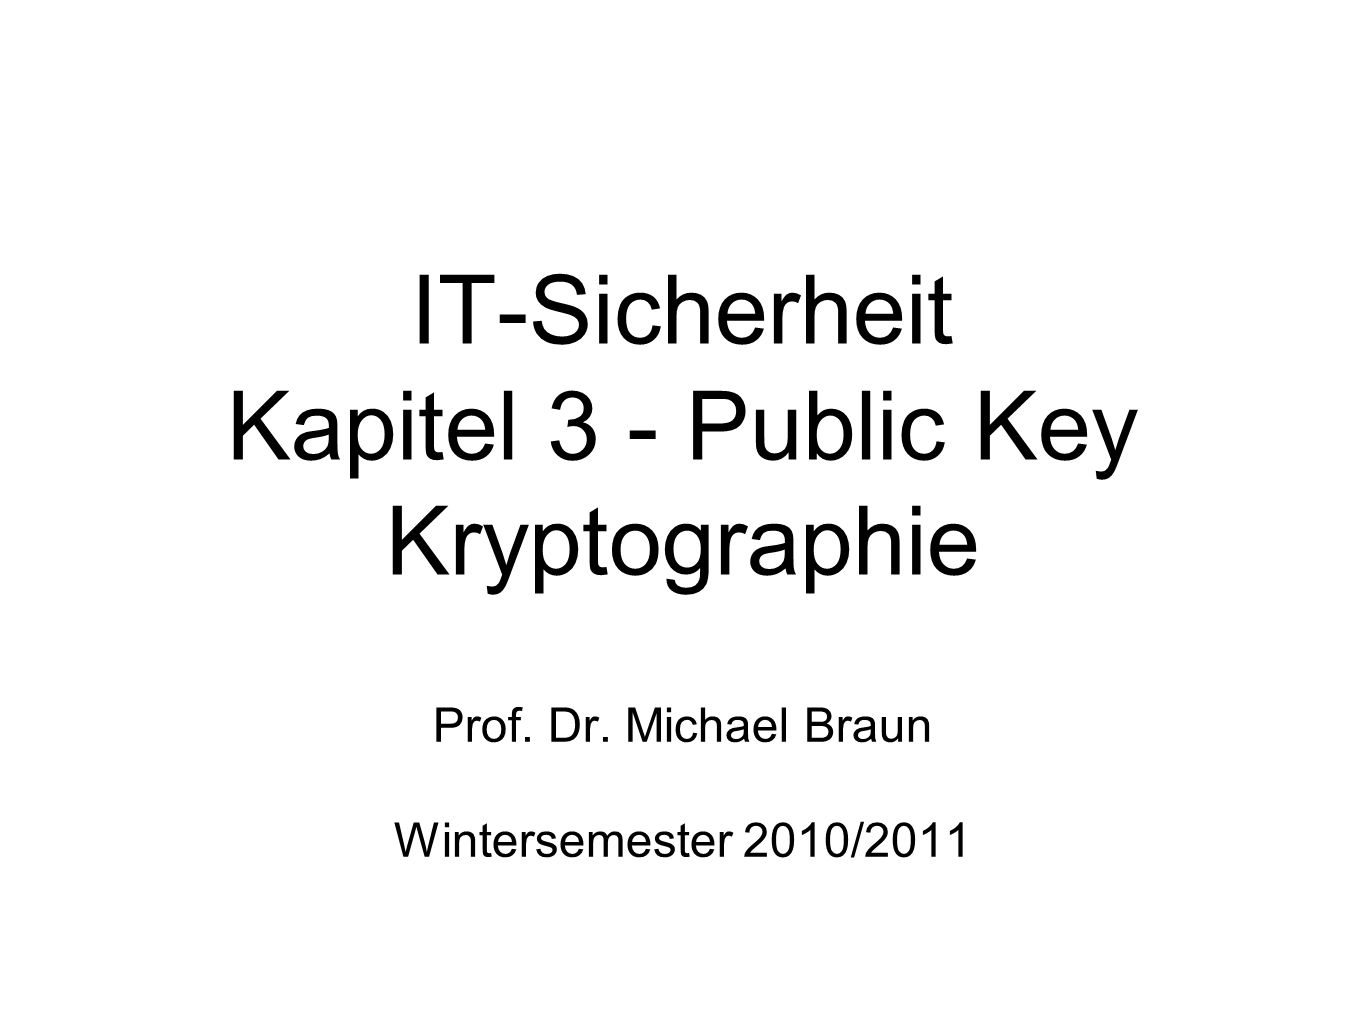 IT-Sicherheit Kapitel 3 - Public Key Kryptographie